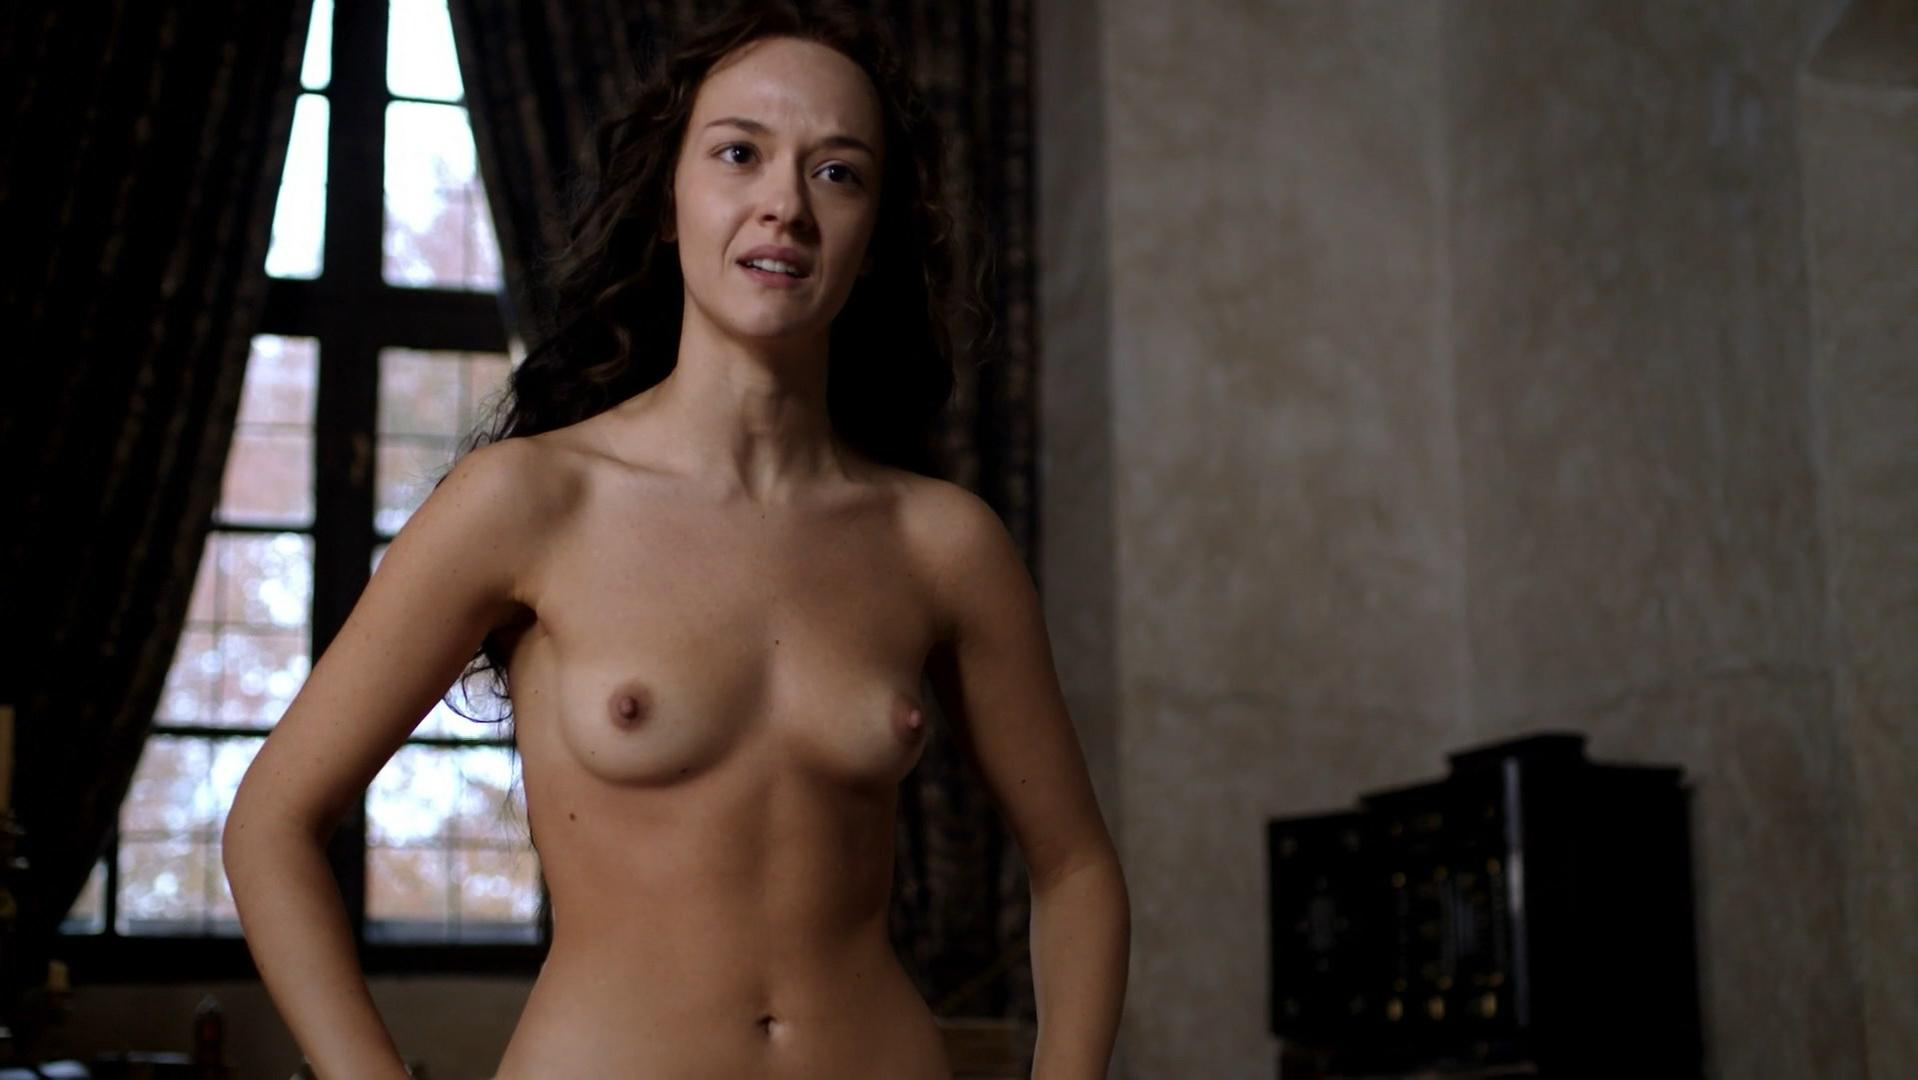 Caren Kaye Nude  Hot Girl Hd Wallpaper-1279